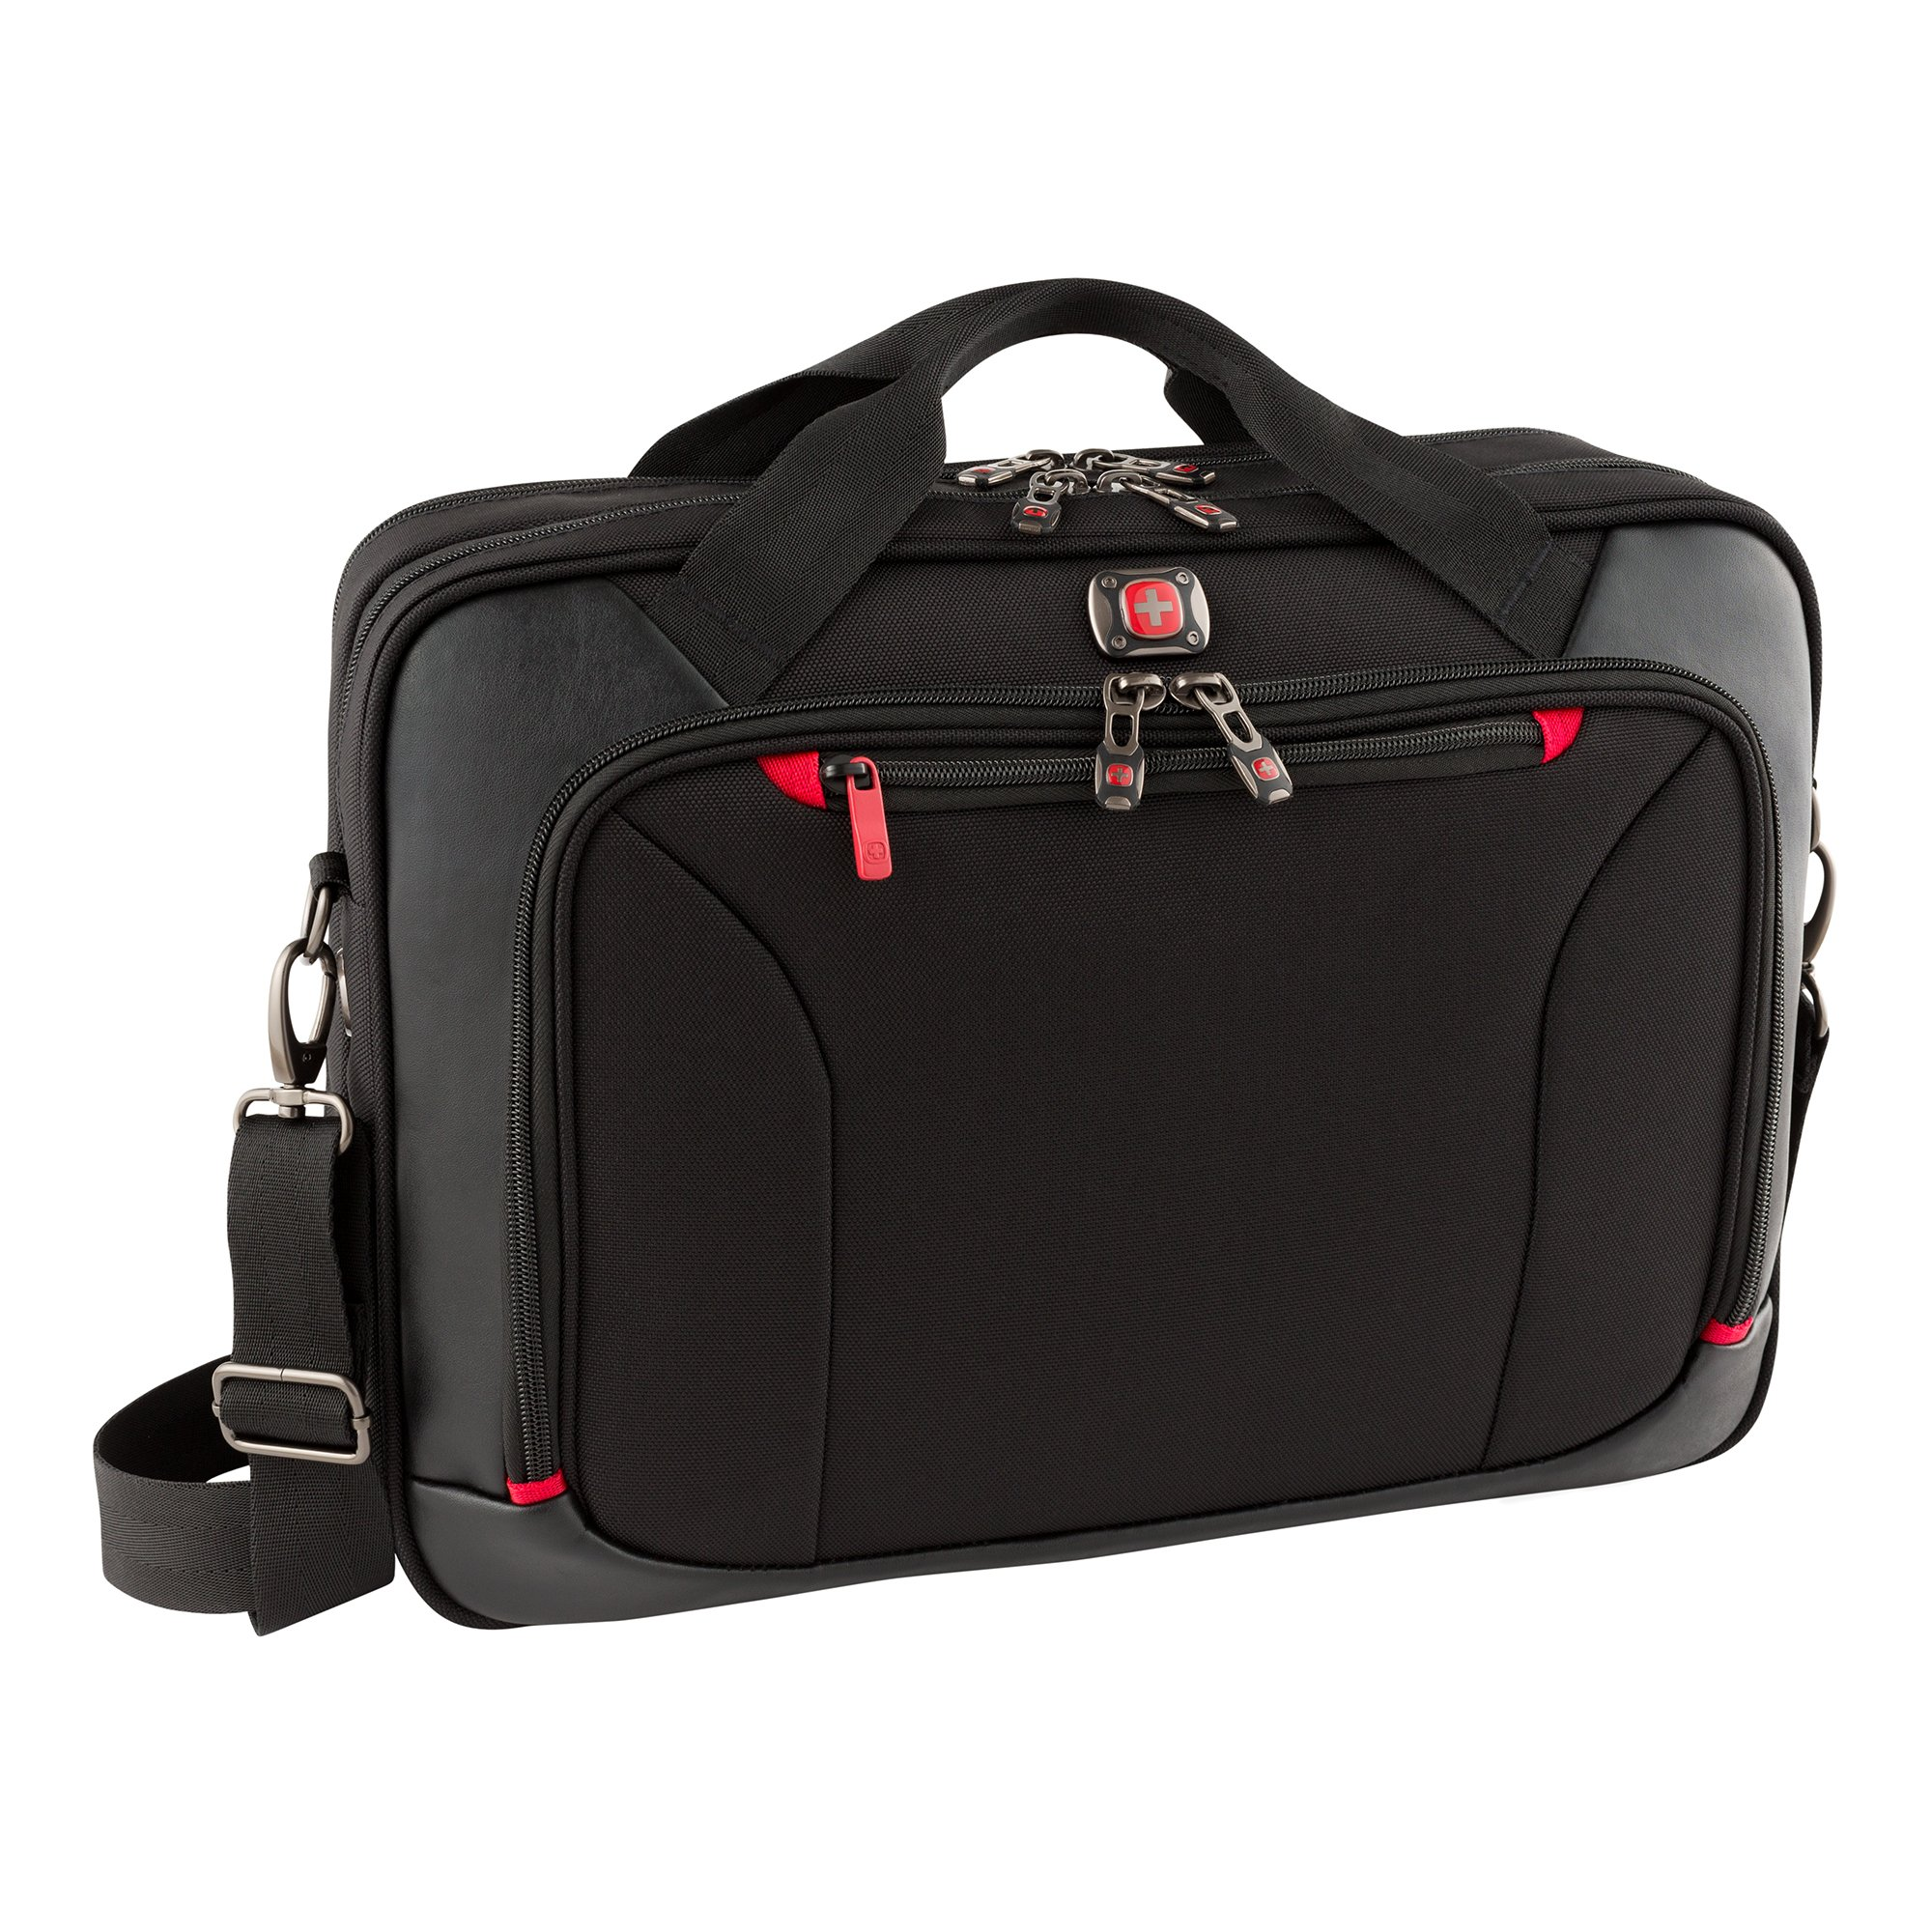 Victorinox Luggage Highwire Deluxe 28373001 High Wire 17'' Laptop Briefcase, Black, One Size